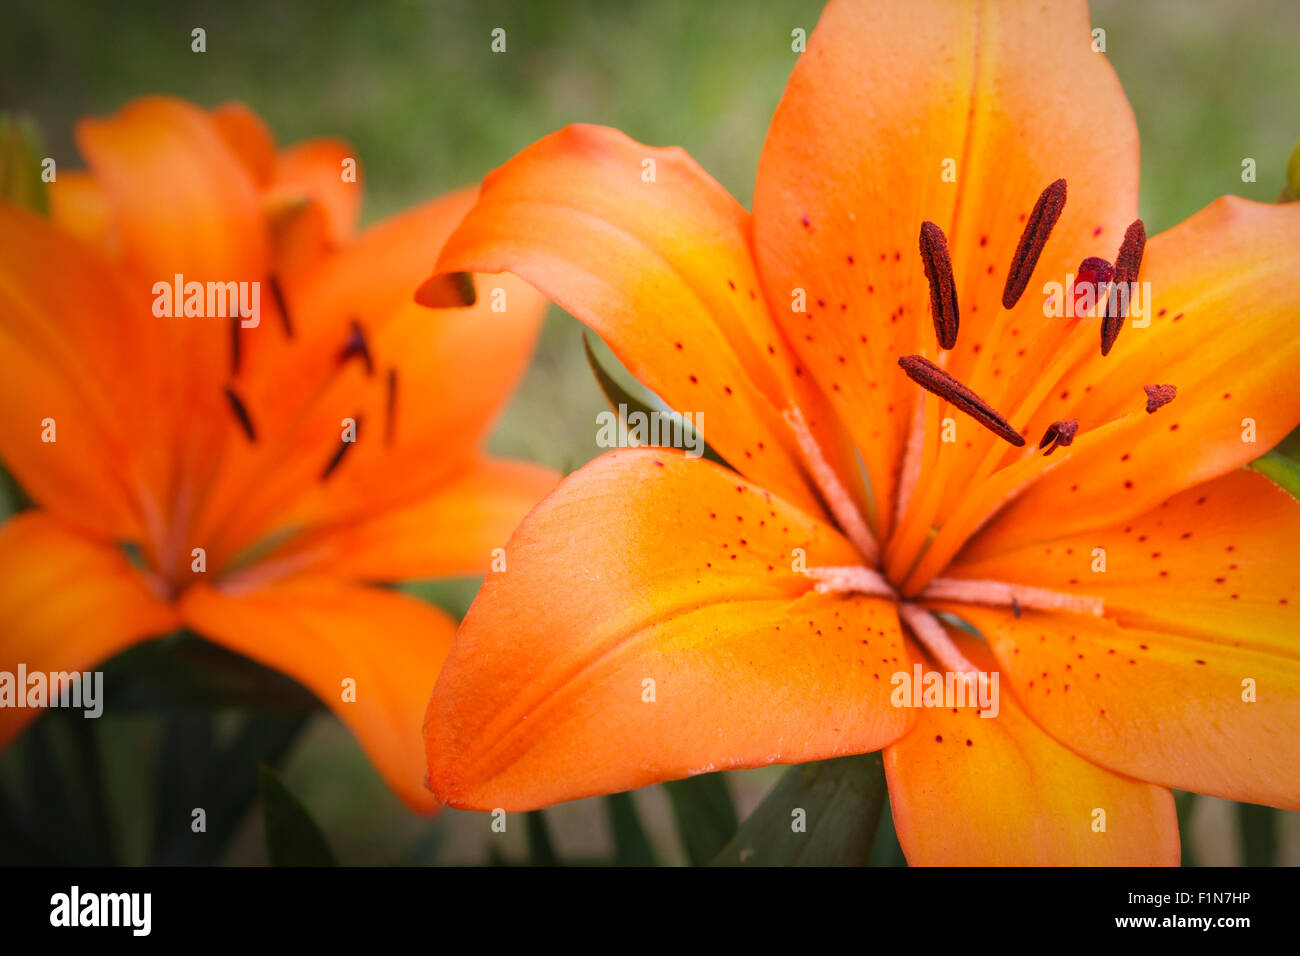 Tiger Lily, Lilium bulbiferum with narrow focal plane, focus on stamen. Stock Photo